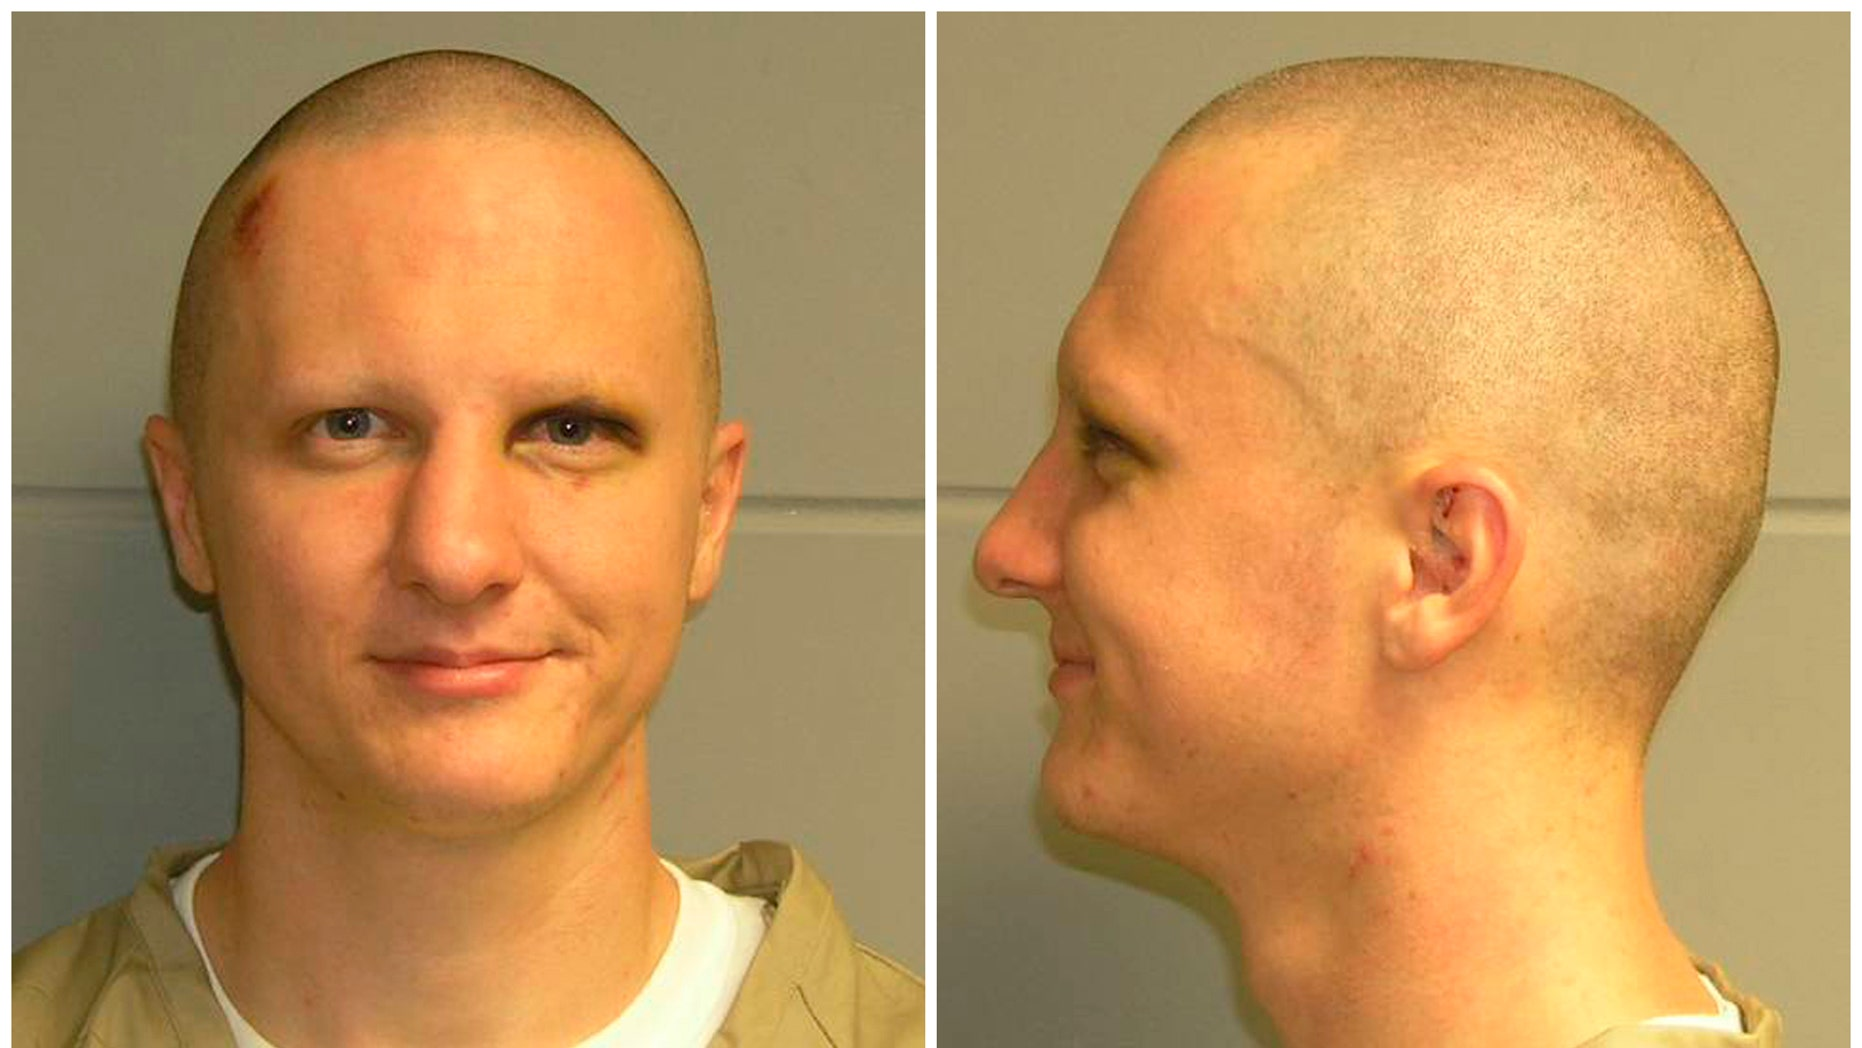 Feb. 22, 2011: Jared Loughner was charged on new counts that include the murders of a federal judge and a congressional aide, according to a March 4 indictment.